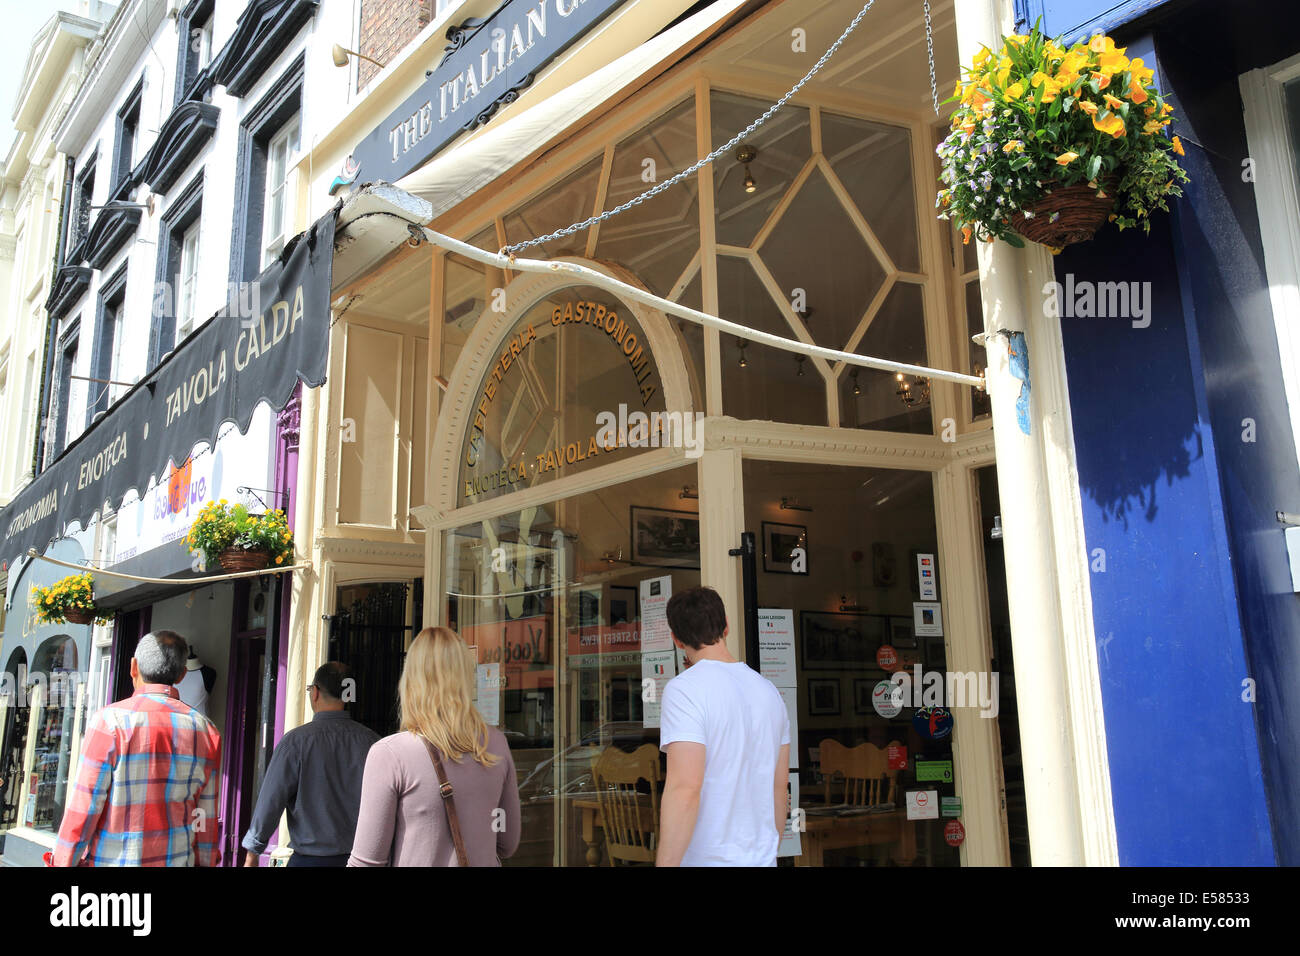 Independent shops on famous Bold Street in Liverpool in the Ropewalks area, in NW England, UK - Stock Image